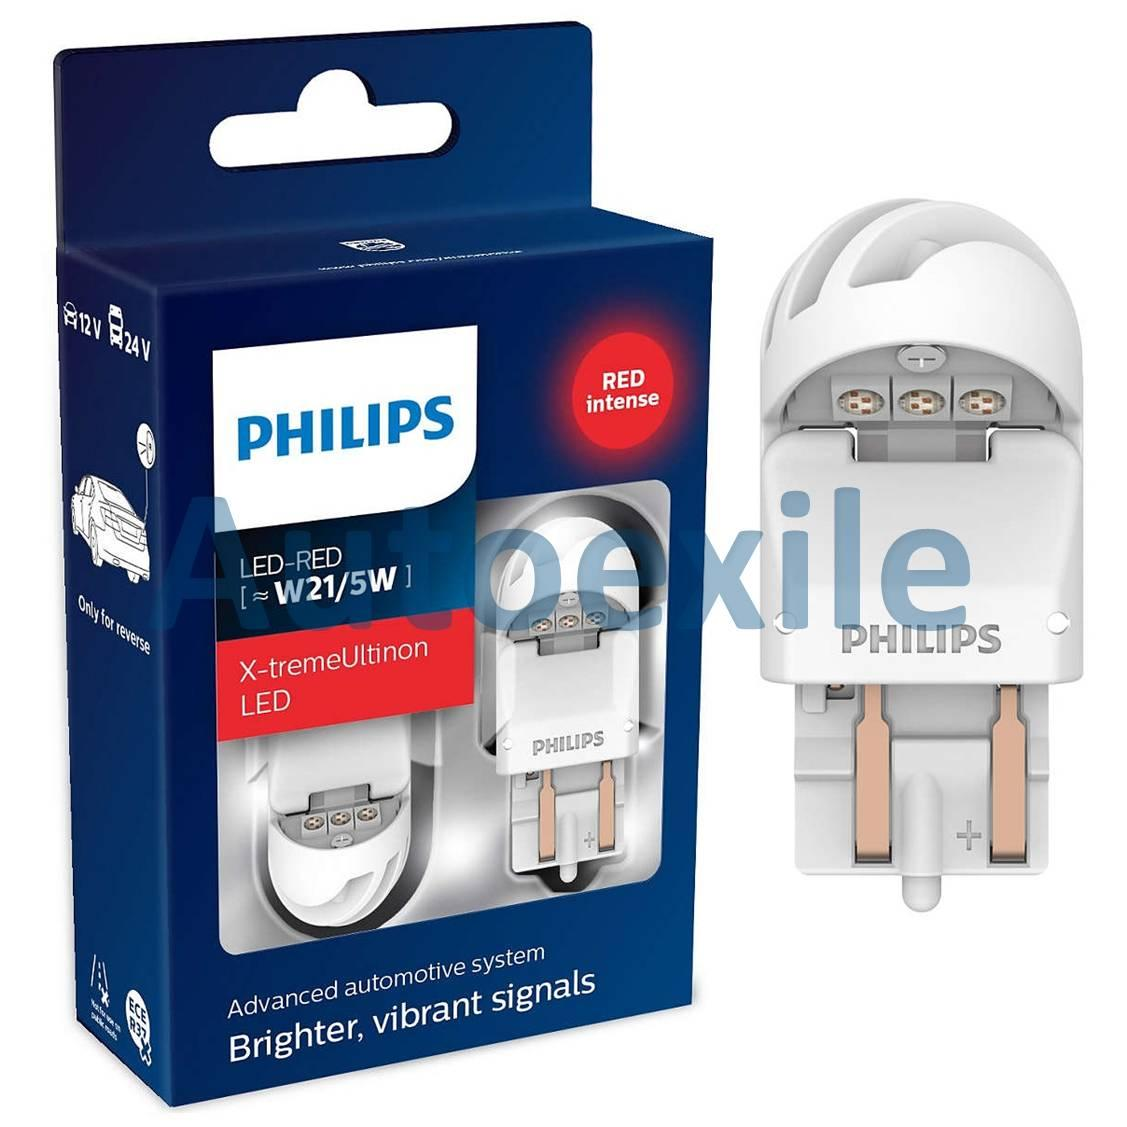 Philips Xtreme Ultinon LED Gen2 T20 W21/5W Red Merah Lampu Rem Mobil